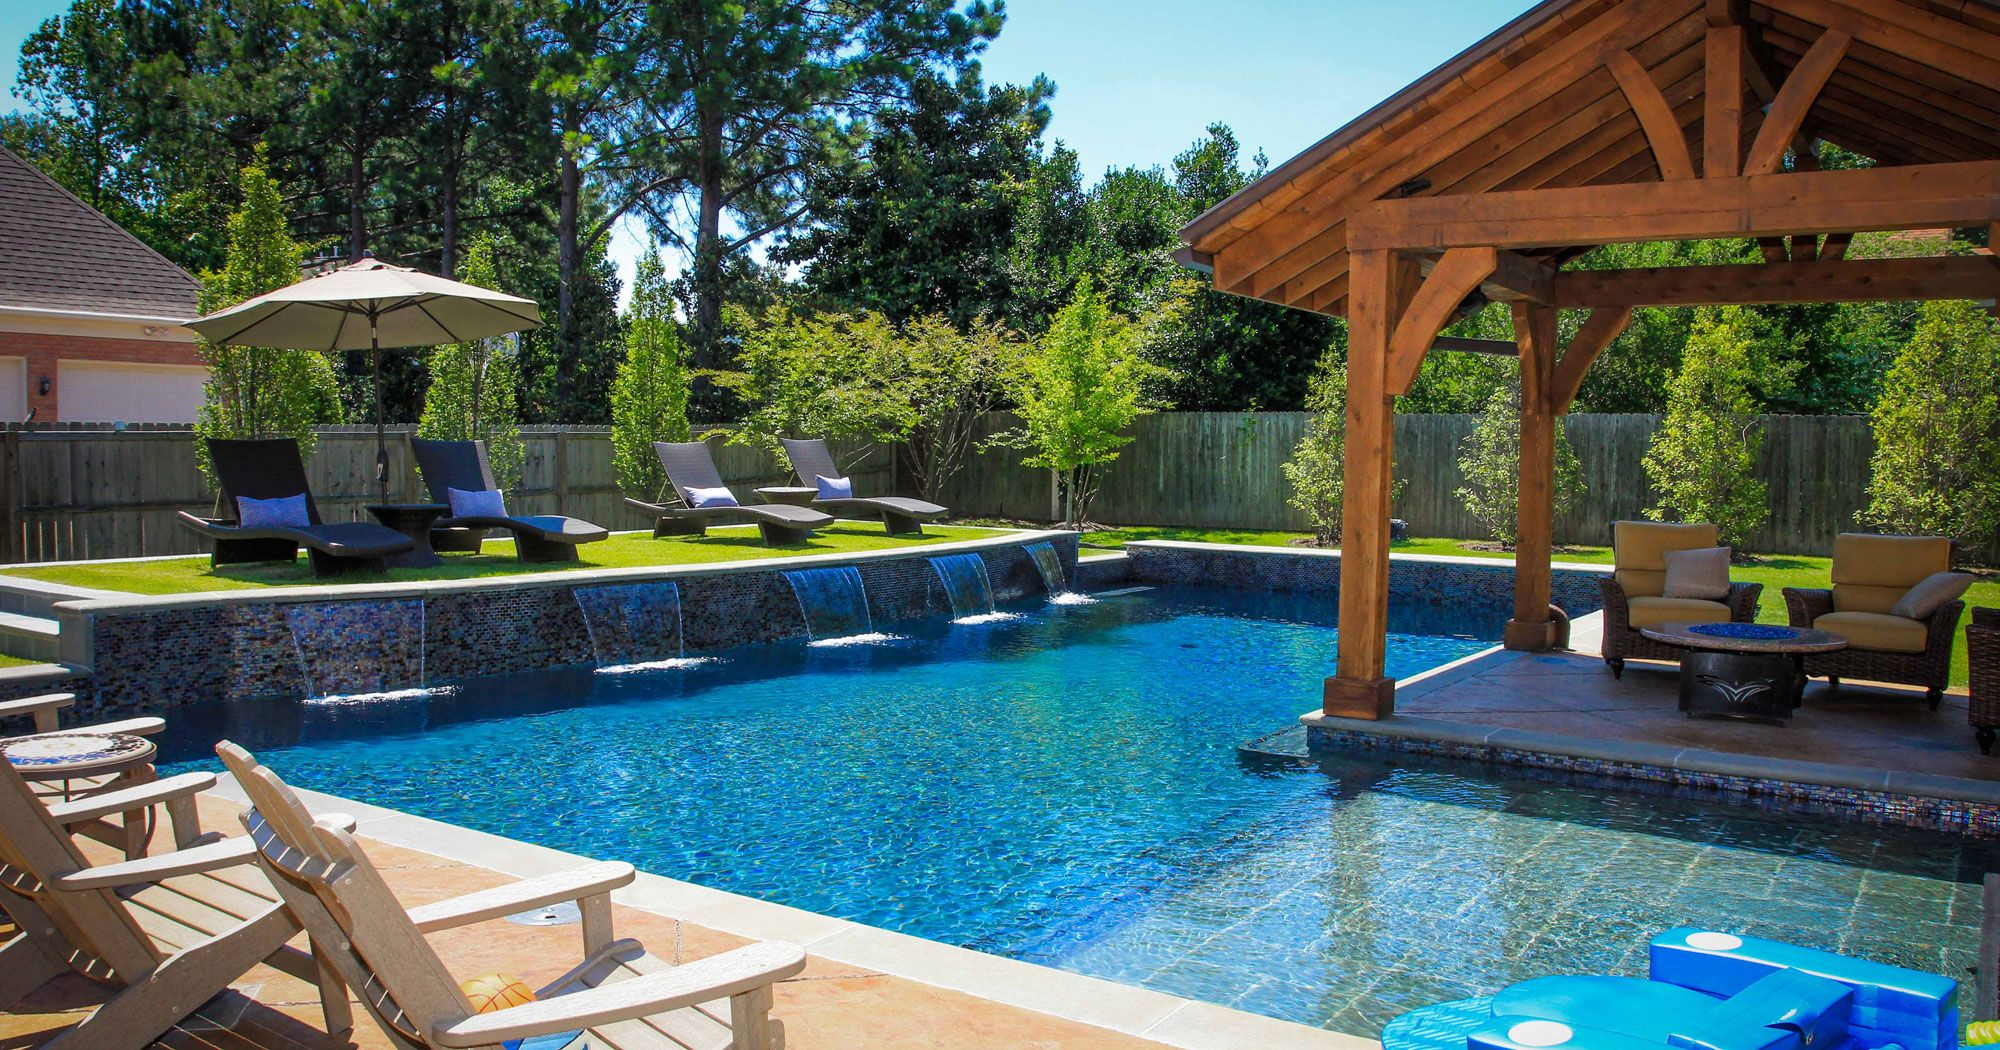 Cool Pool Landscaping Ideas For Backyard Pool Design With Green Grassed Backyard Marble Floore Small Backyard Pools Backyard Pool Landscaping Small Pool Design